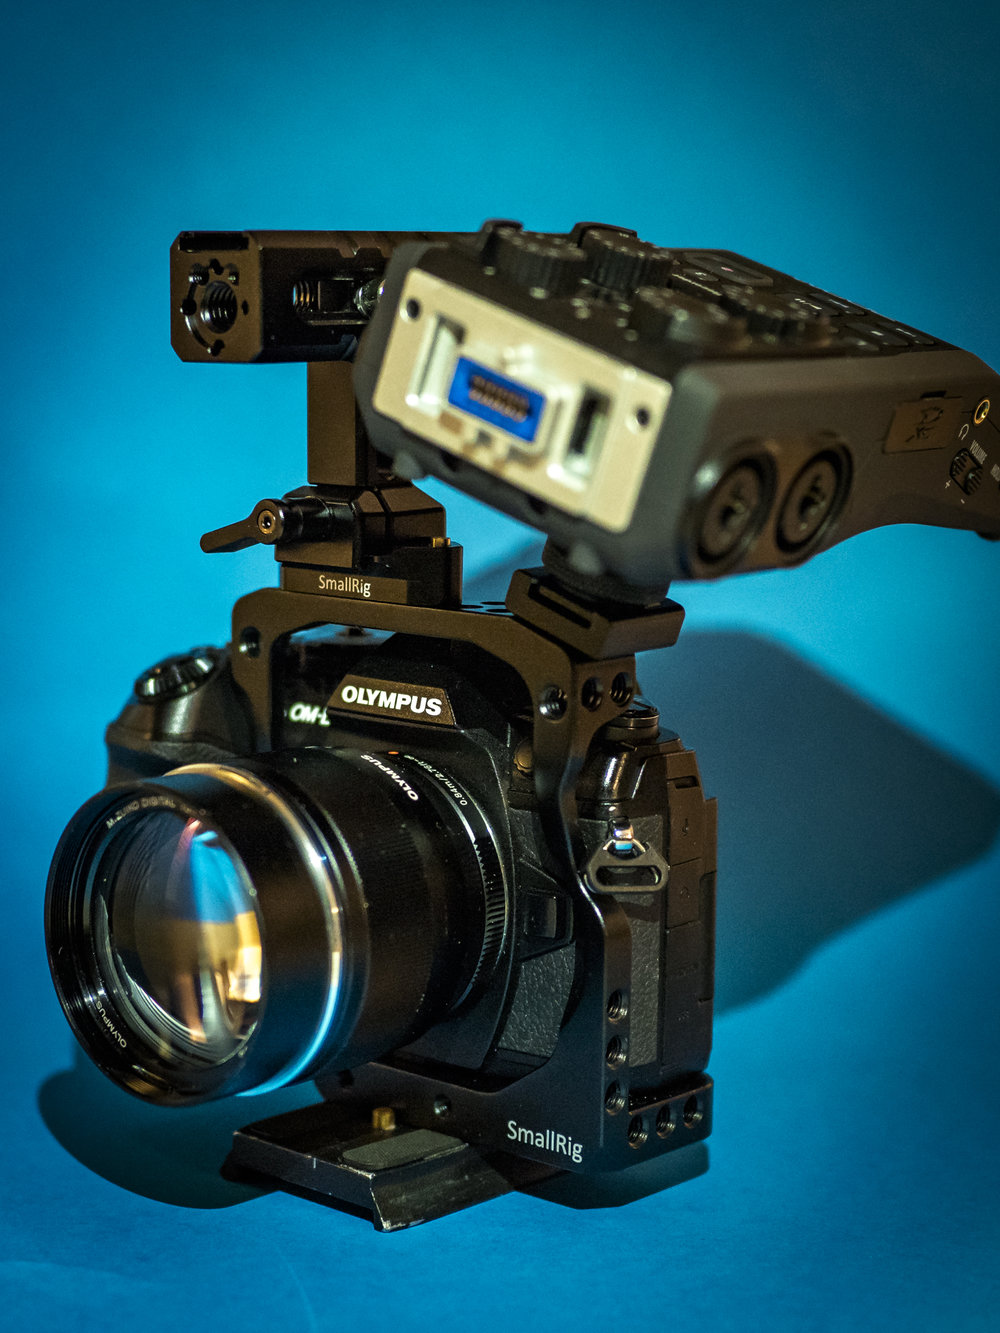 SmallRig Cage with the Zoom H6 attached